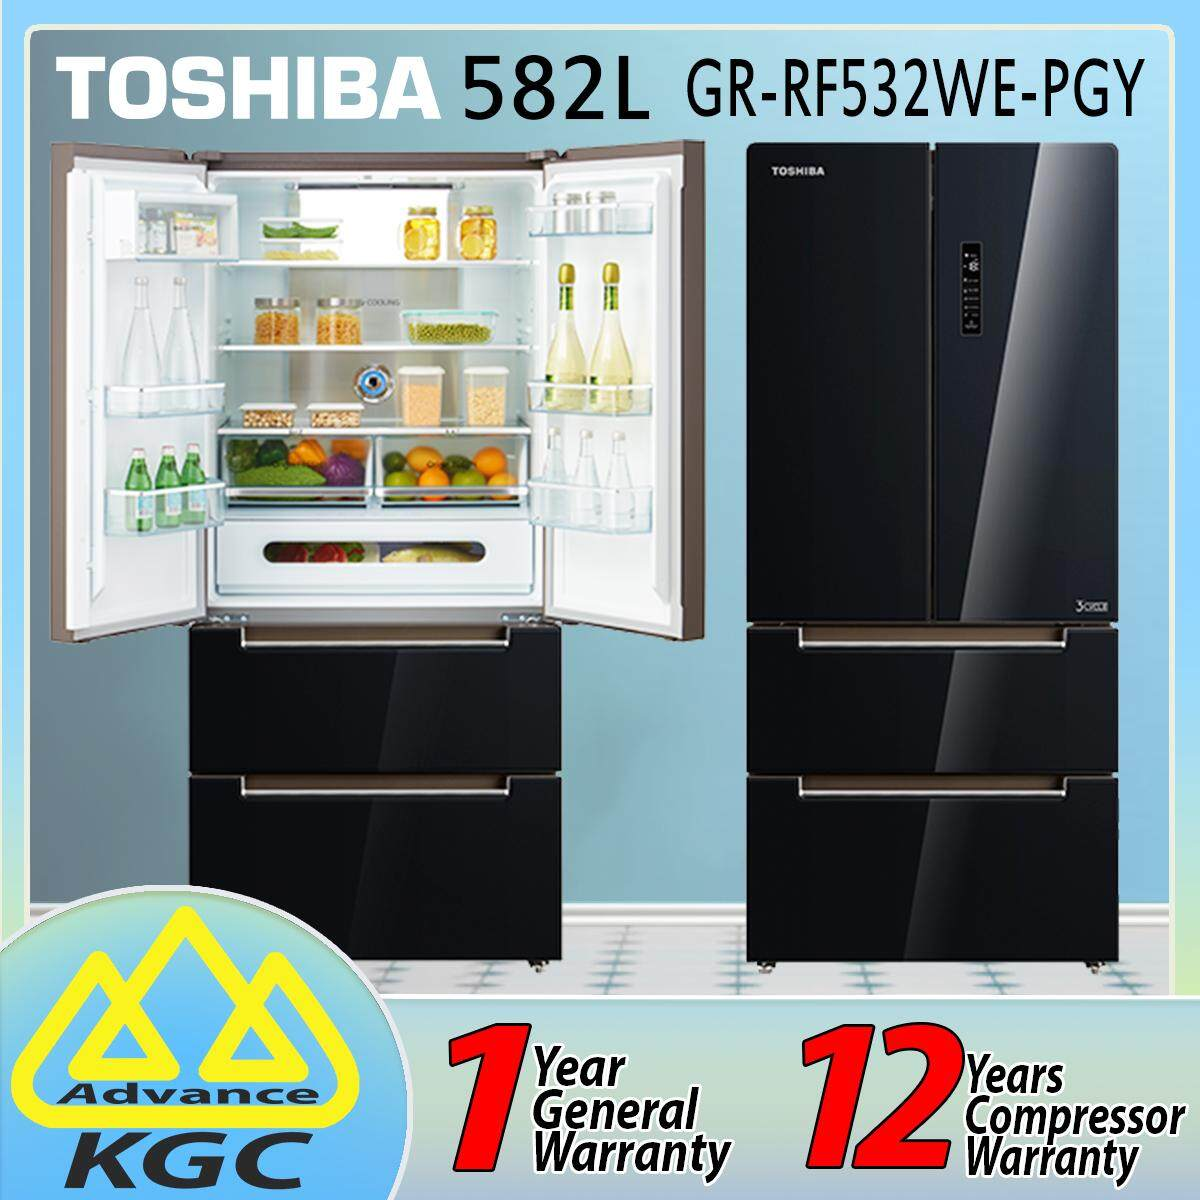 Toshiba 582L French Door Dual Inverter Refrigerator GR-RF532WE-PGY (22)